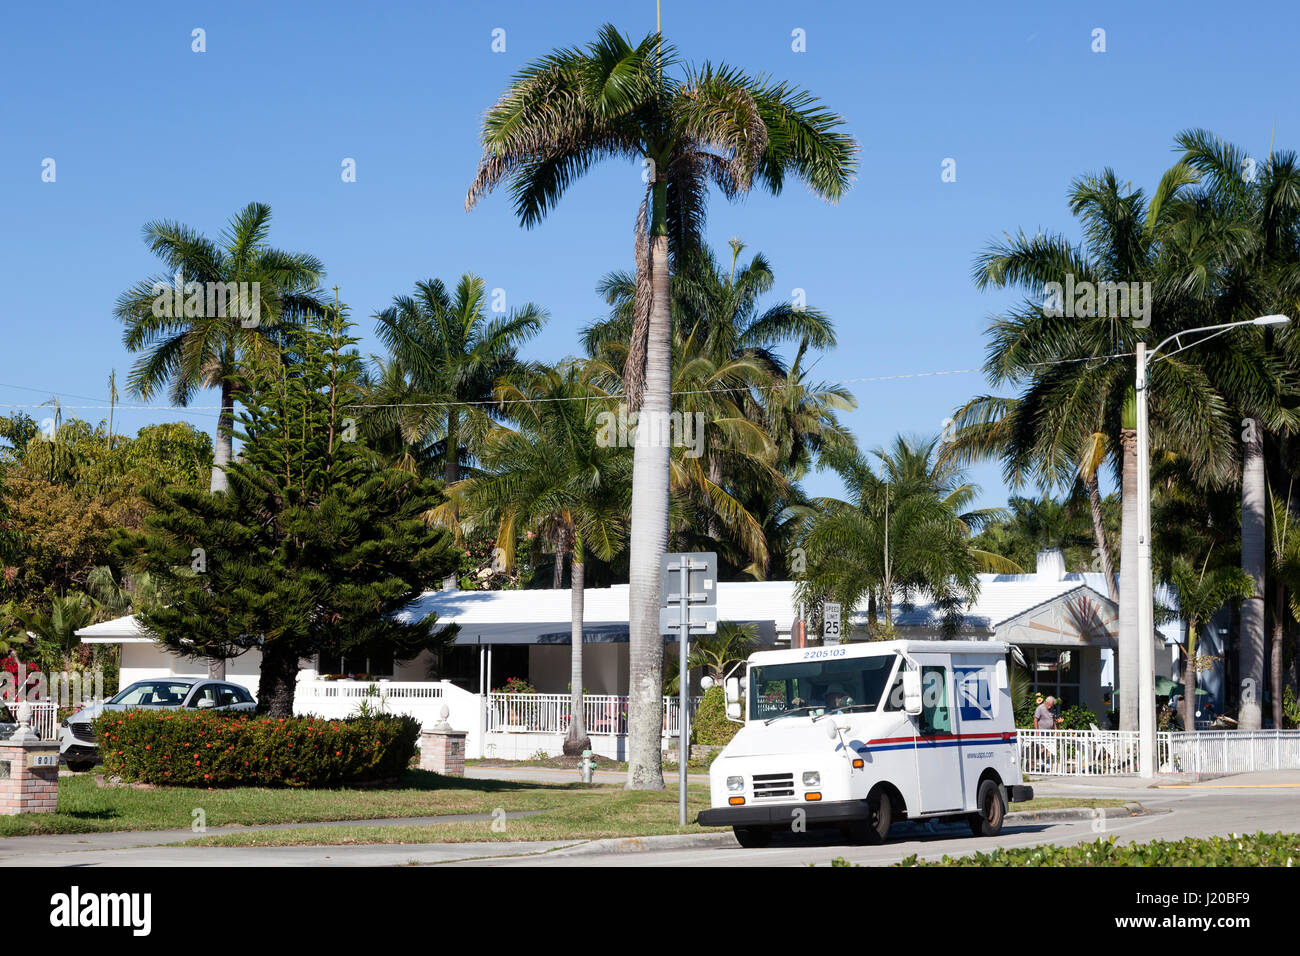 Hollywood, Fl, USA - March 21, 2017: United States Postal Service (USPS) truck delivering in a residential neighborhood - Stock Image